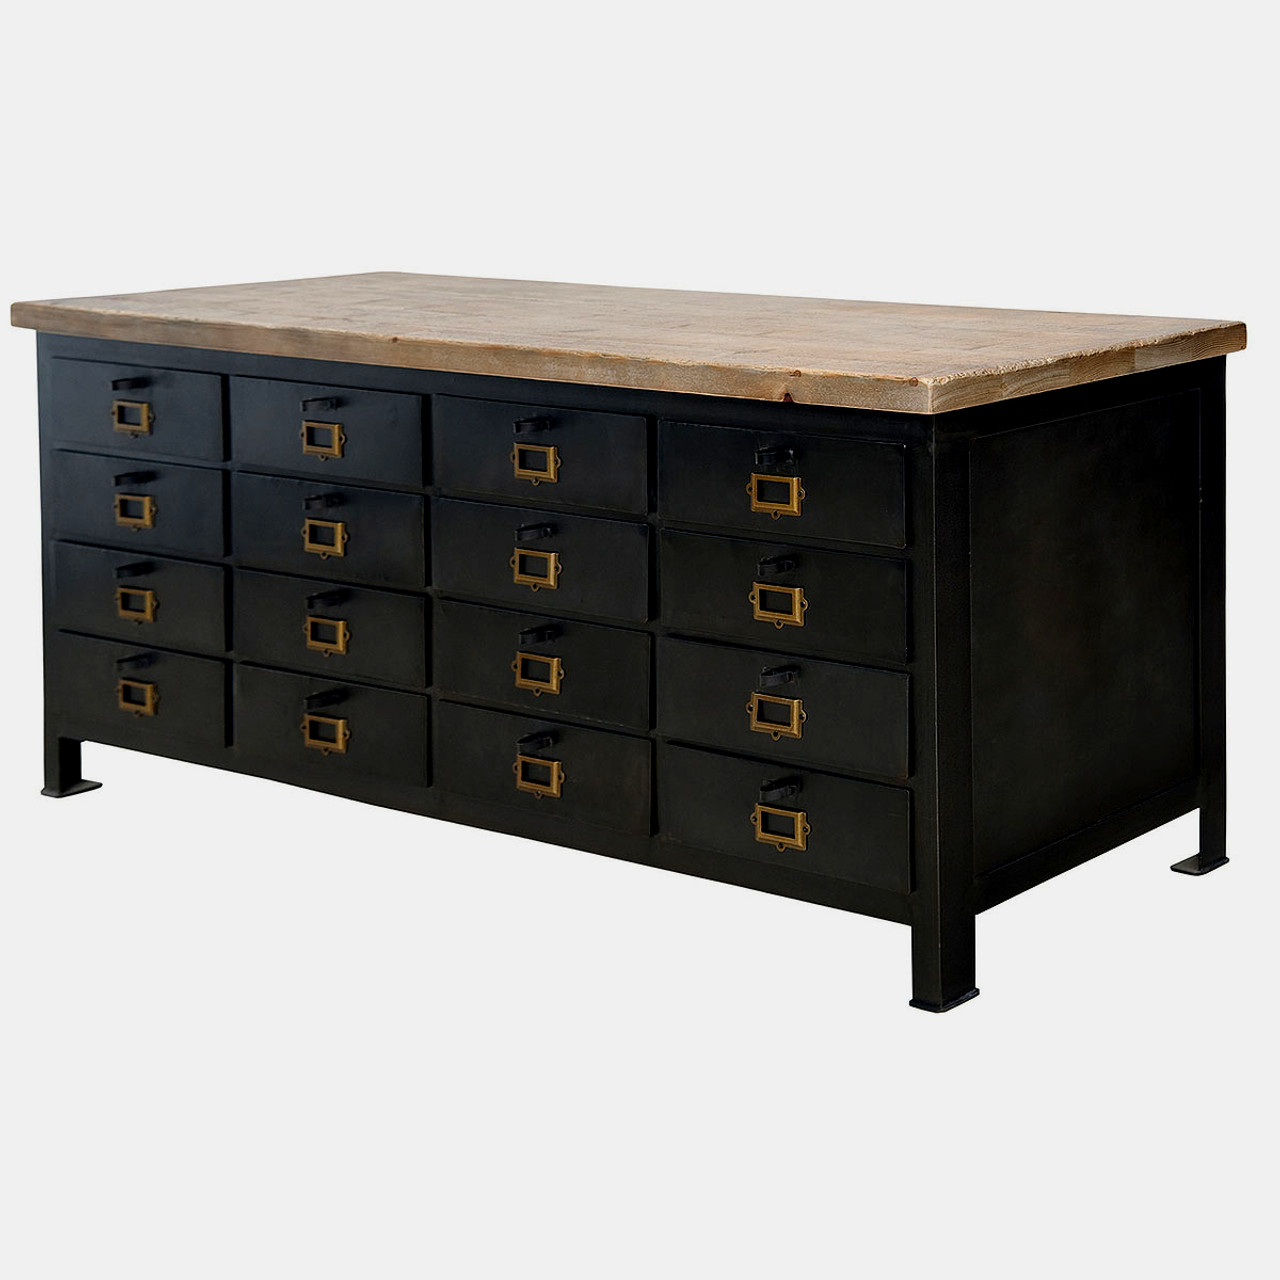 Sideboard Industrial industrial tool chest sideboard zin home